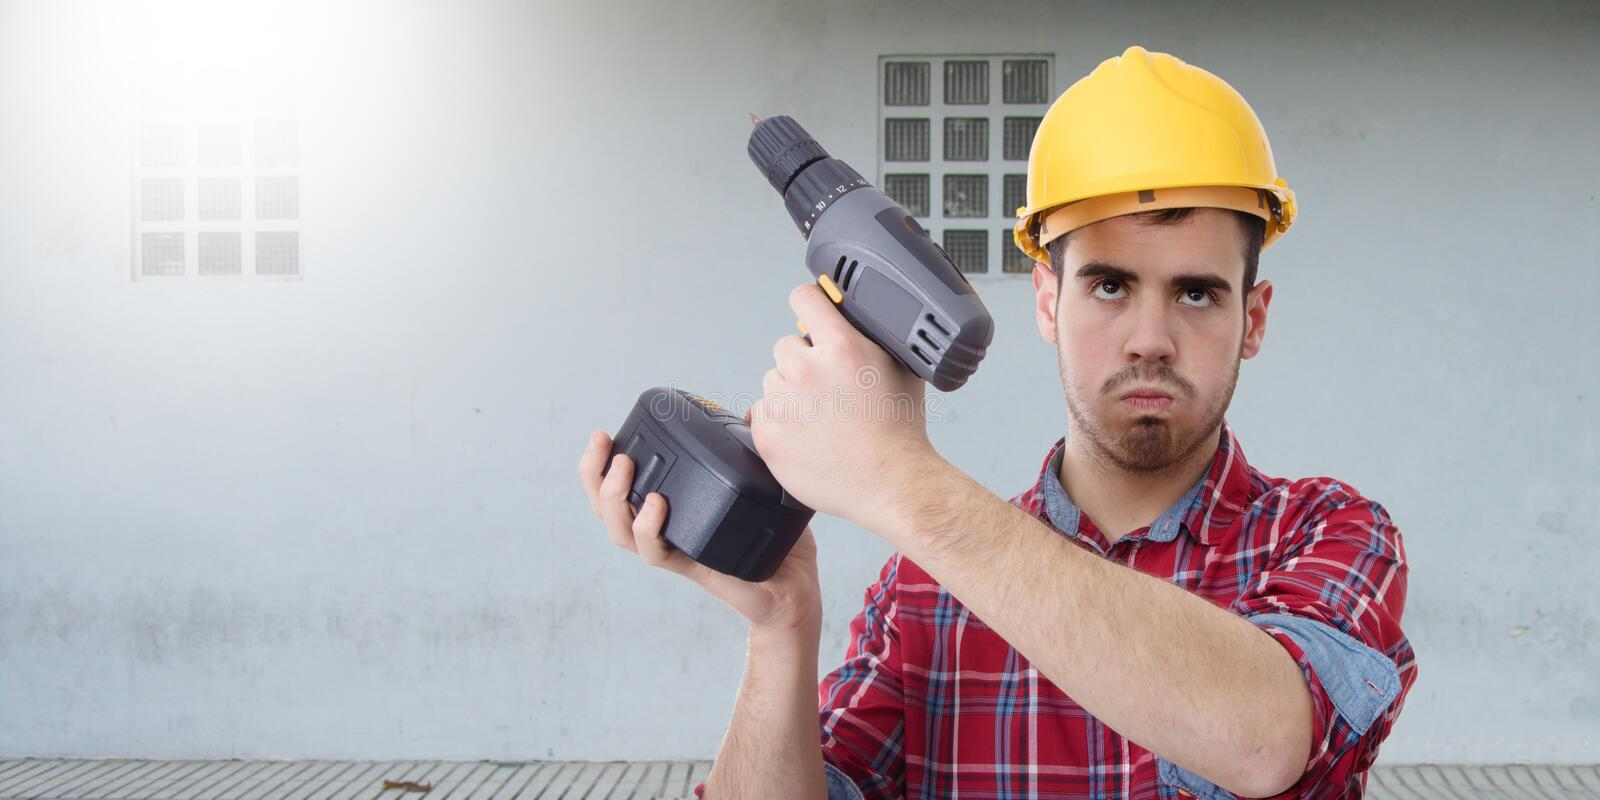 Constructor with drill. Renovations, repairs and bricolage royalty free stock photography